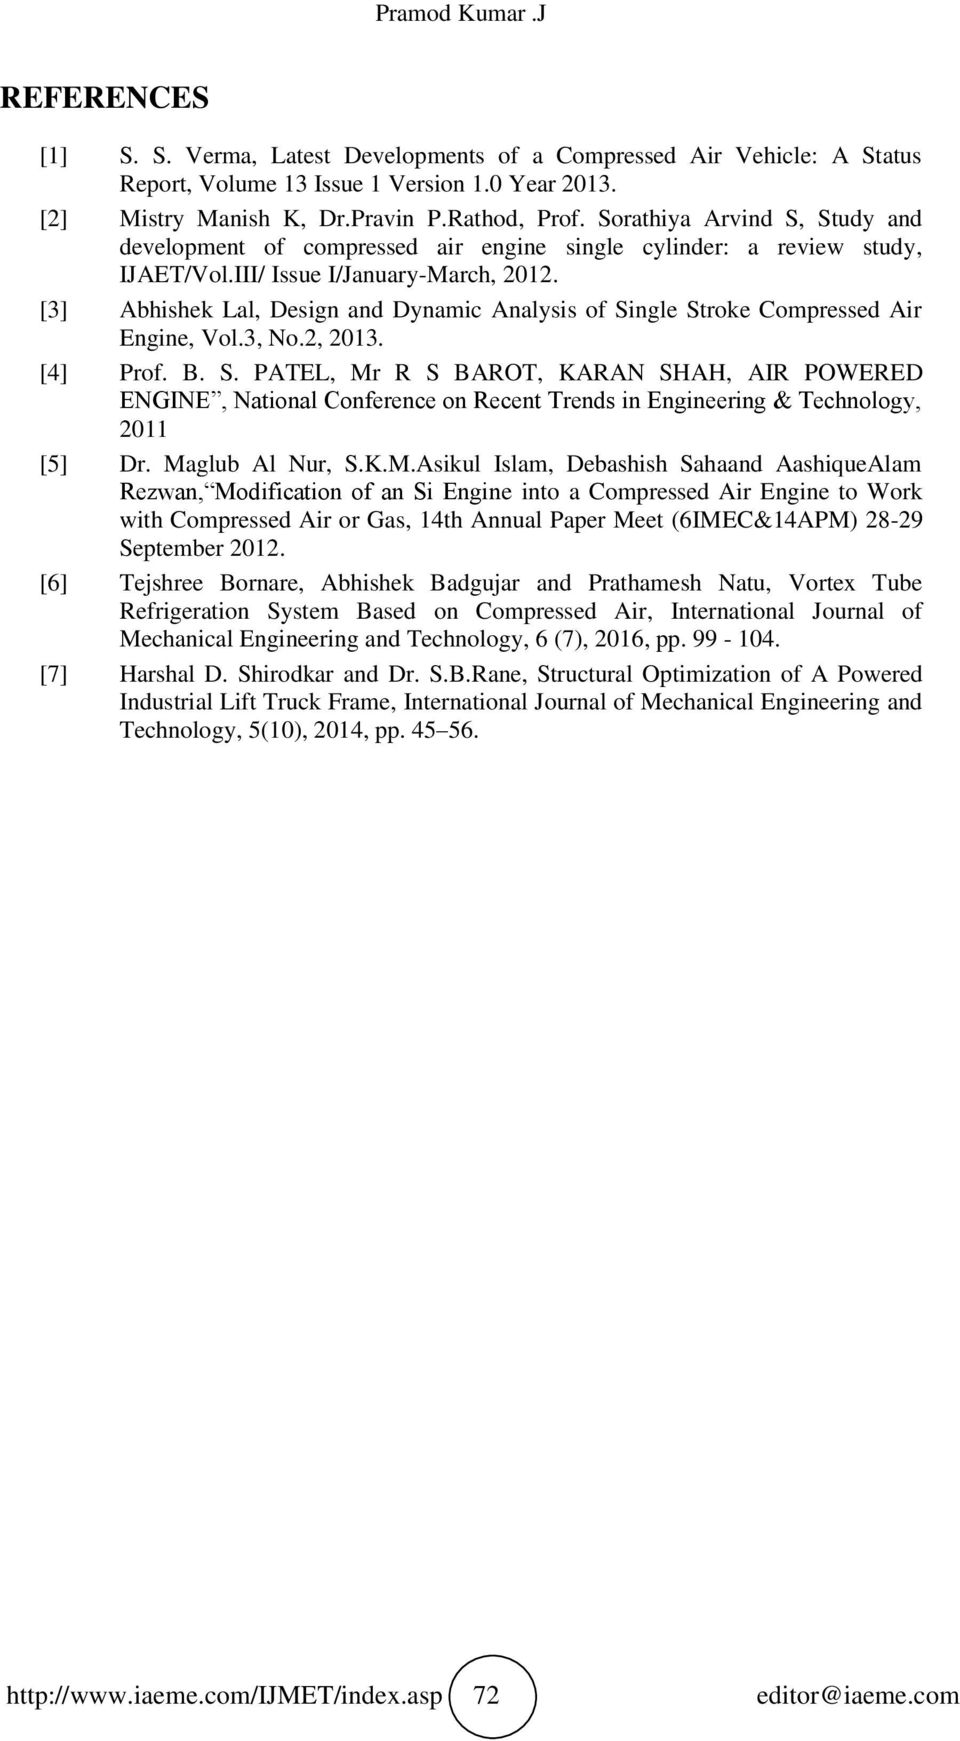 [3] Abhishek Lal, Design and Dynamic Analysis of Single Stroke Compressed Air Engine, Vol.3, No.2, 2013. [4] Prof. B. S. PATEL, Mr R S BAROT, KARAN SHAH, AIR POWERED ENGINE, National Conference on Recent Trends in Engineering & Technology, 2011 [5] Dr.